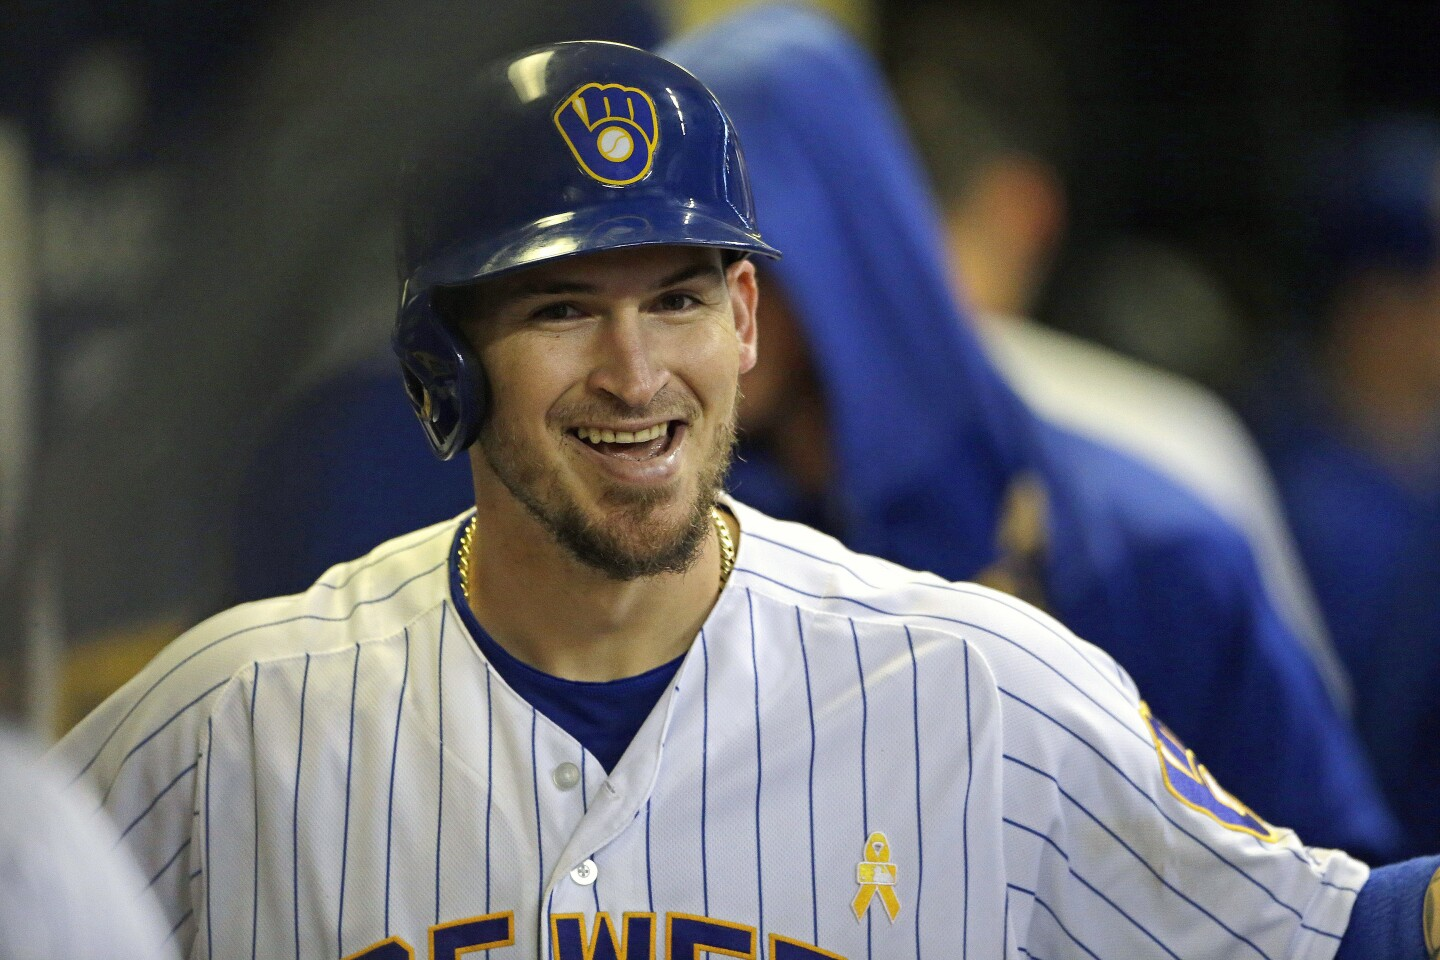 FILE - In this Sept. 7, 2019, file photo, Milwaukee Brewers' Yasmani Grandal smiles in the dugout after hitting a solo home run during the eighth inning of a baseball game against the Chicago Cubs, in Milwaukee. All-Star catcher Yasmani Grandal agreed to a $73 million, four-year contract with the Chicago White Sox, finding a more lucrative free-agent market now that he no longer is burdened by draft-pick compensation. Grandal will earn $18.25 million annually as part of the deal announced Thursday, Nov. 21, 2019. (AP Photo/Aaron Gash, File)